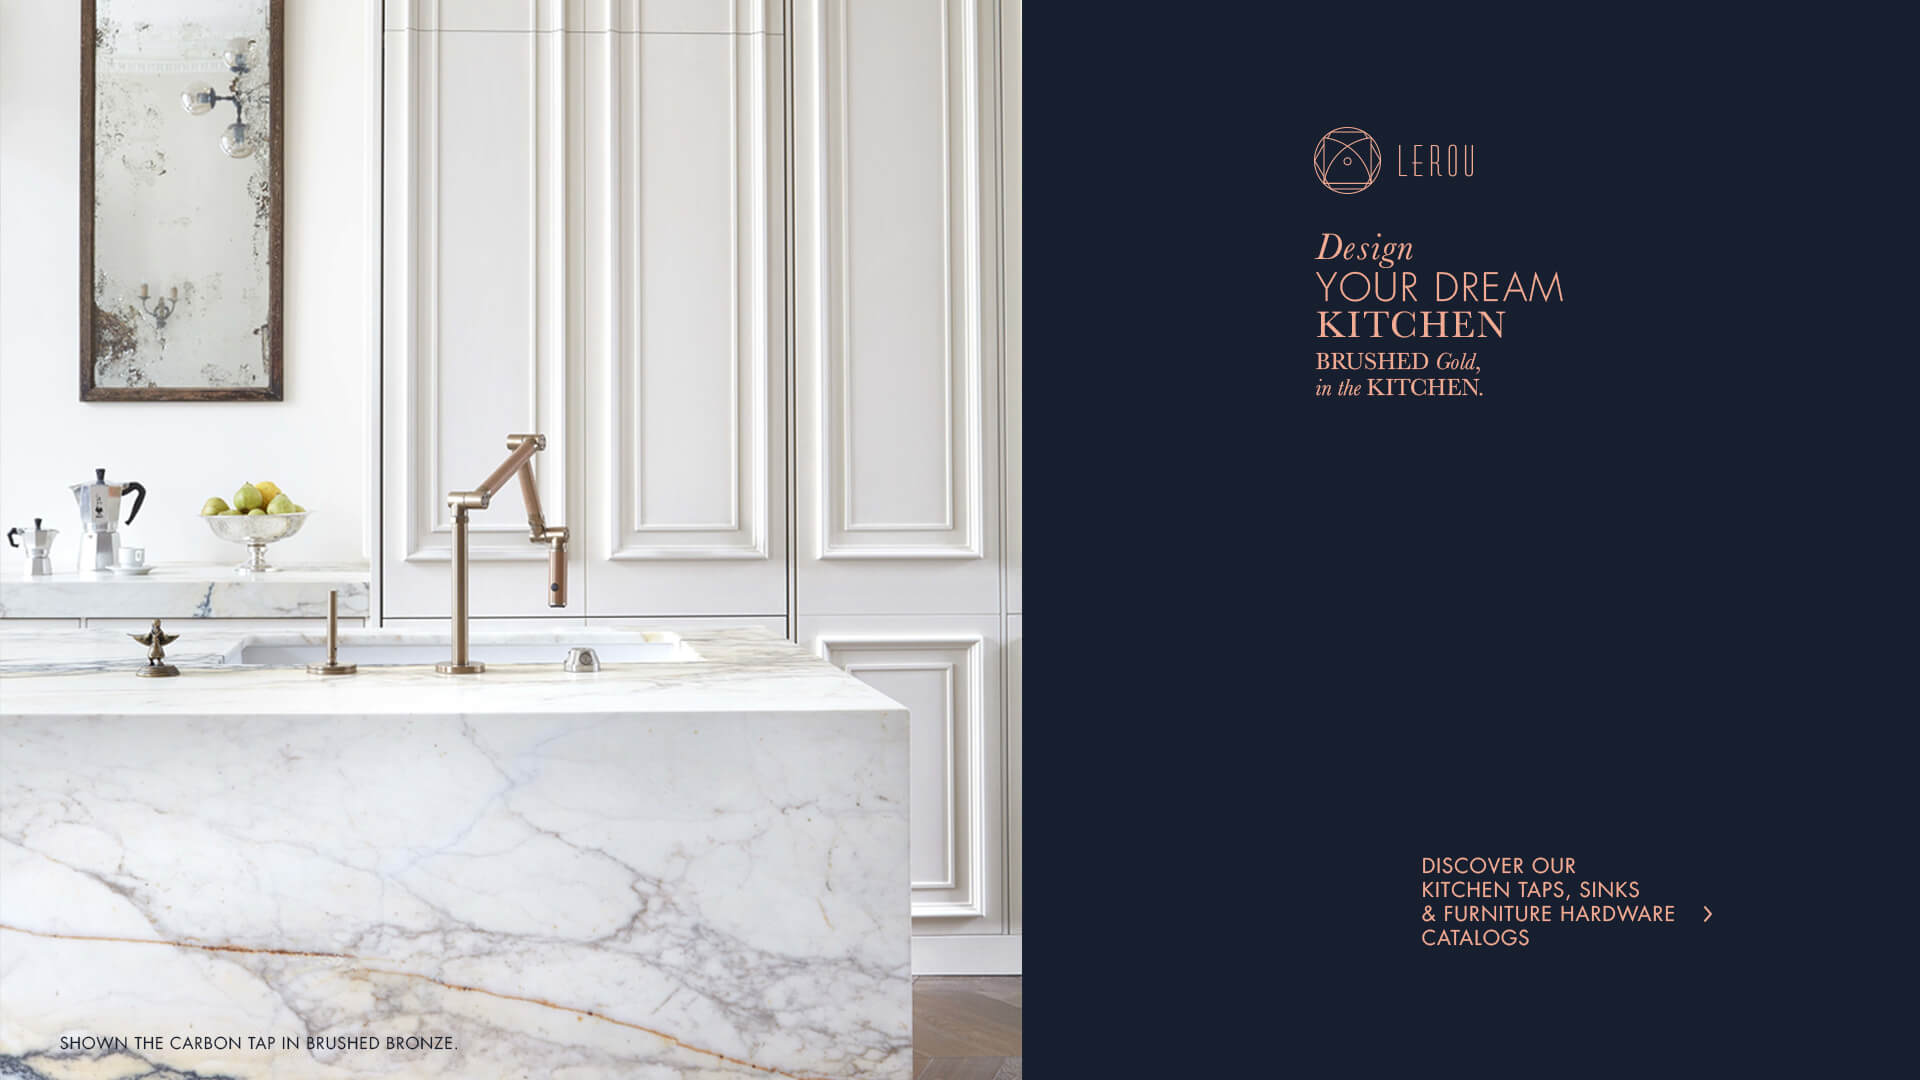 Design Your Dream Kitchen: Brushed Gold in the Kitchen. Ontwerp uw droomkeuken: geborsteld Goud in de keuken.